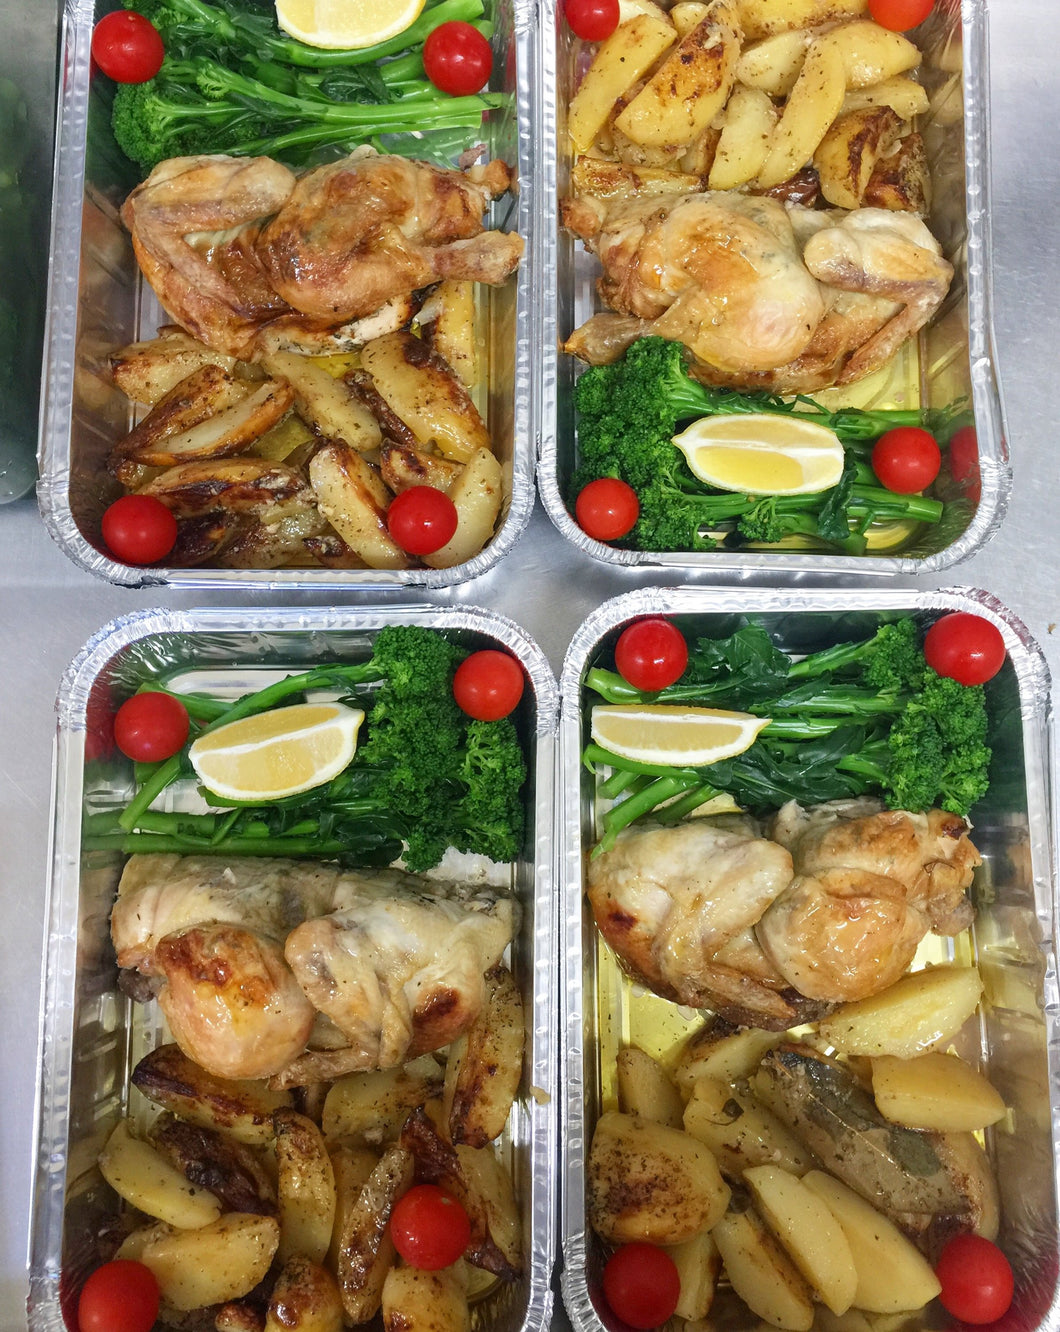 General Store & Cafe Berrima: Roast Chicken with White Wine Roasted Vegetables - Serves 6